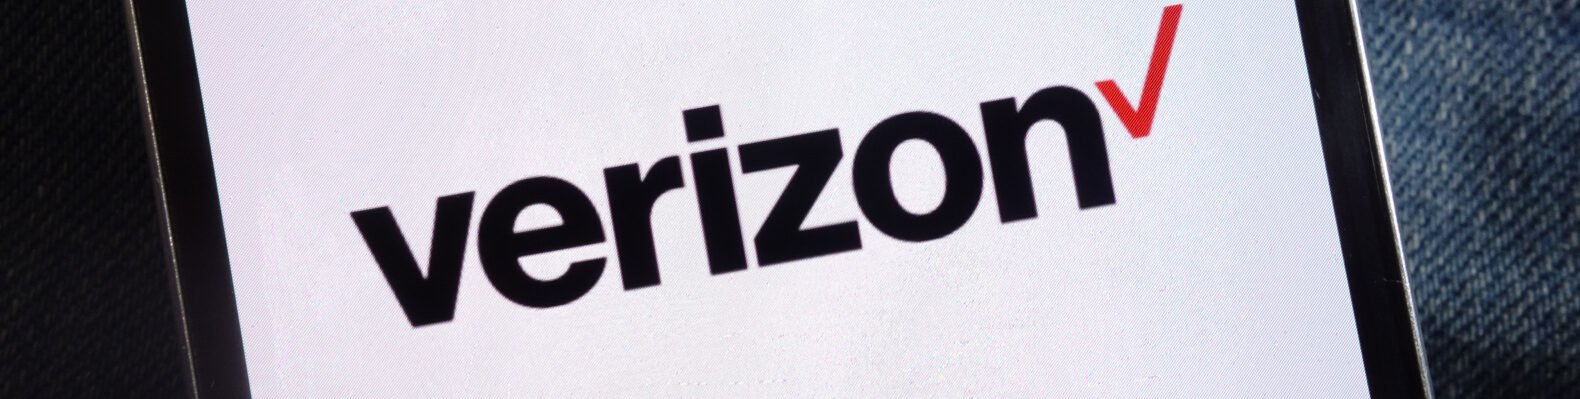 verizon logo on a phone screen